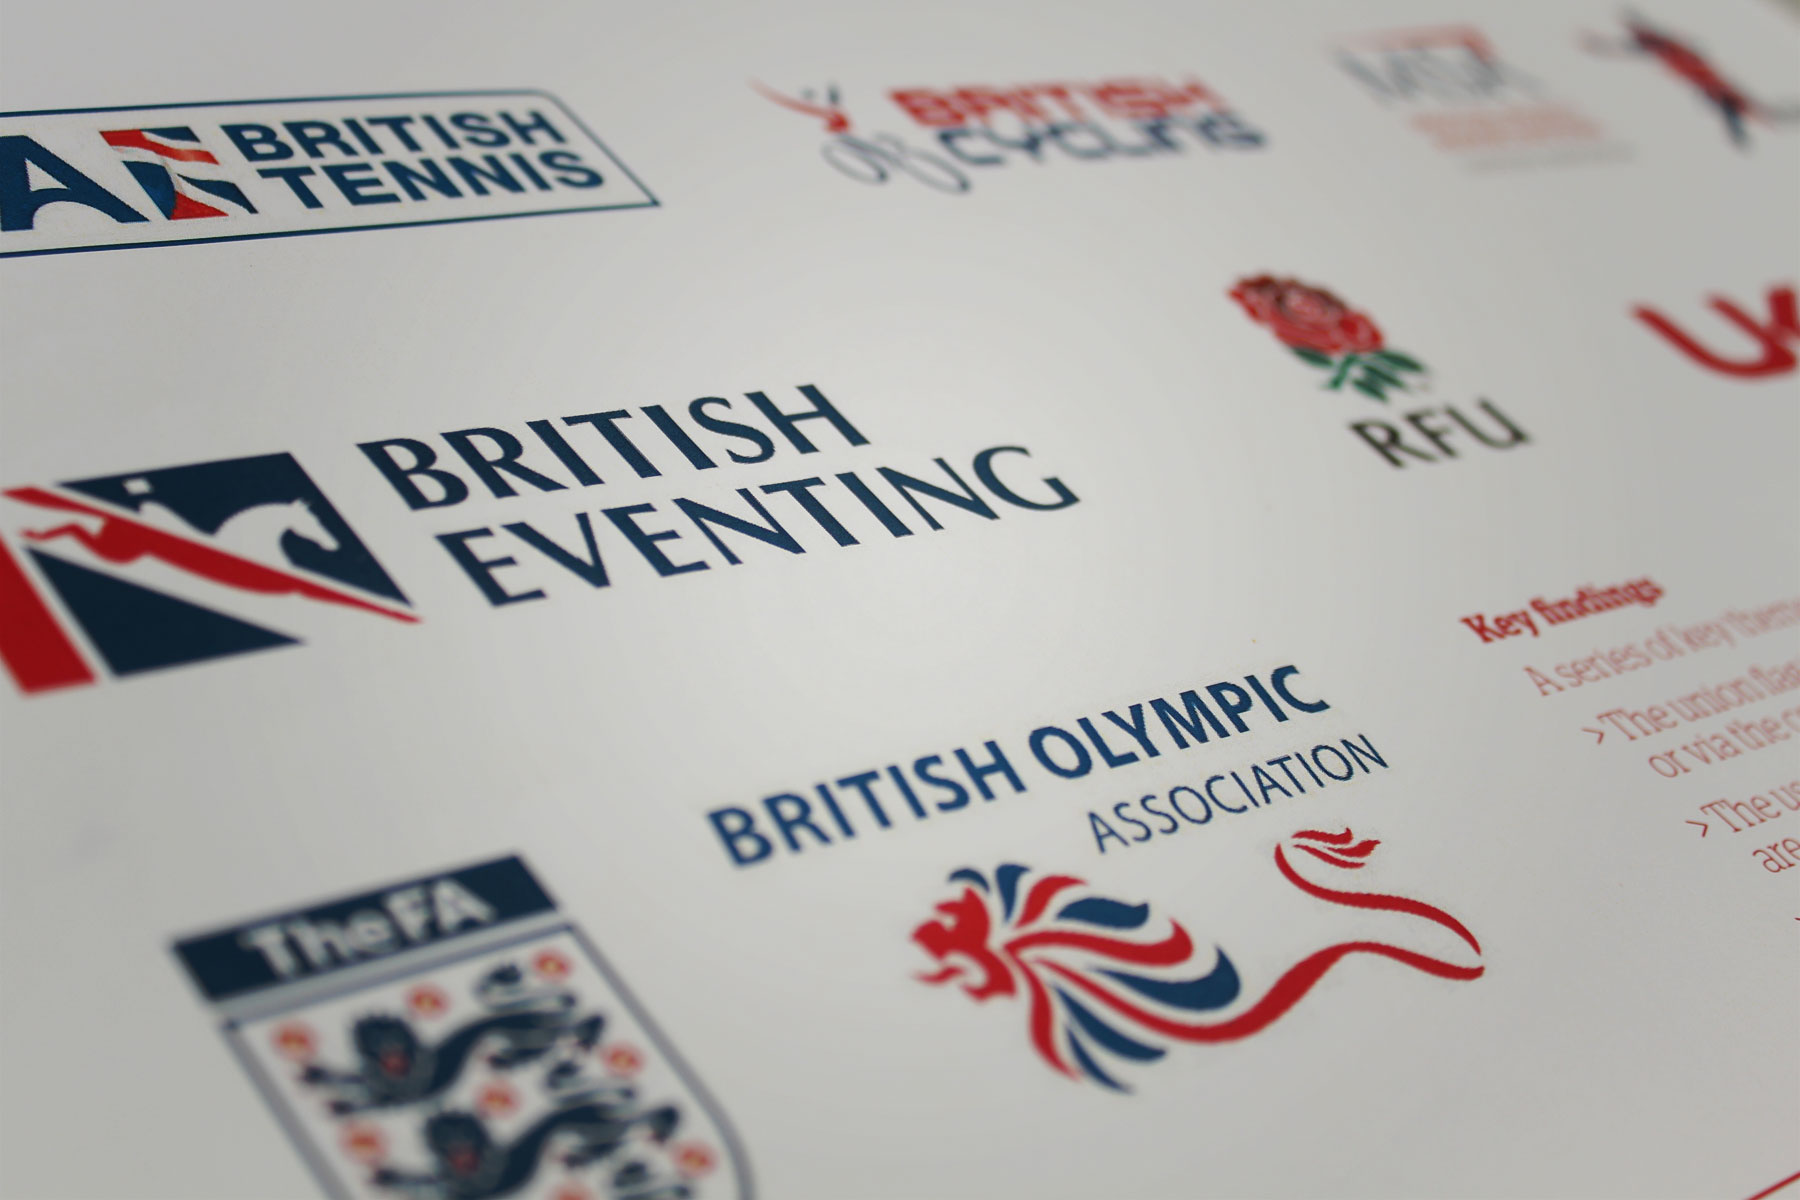 Research into governing bodies in sport highlighted the usage of caps and a consistent colour palette that represented Great Britain.